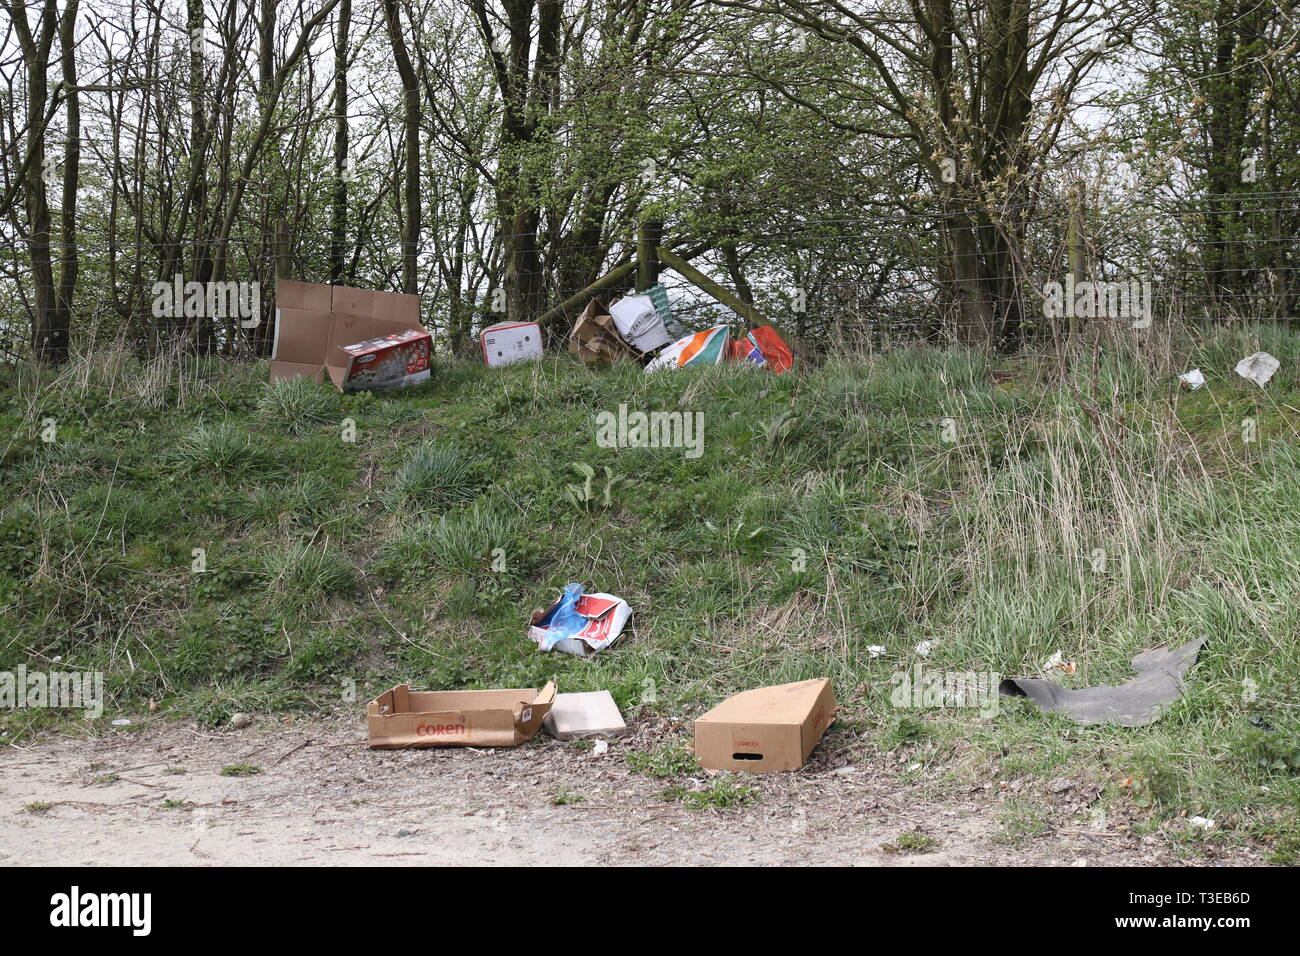 Watergrove Rochdale Lancashire UK- A local beauty spot that has been spoilt by people dumping rubbish. - Stock Image